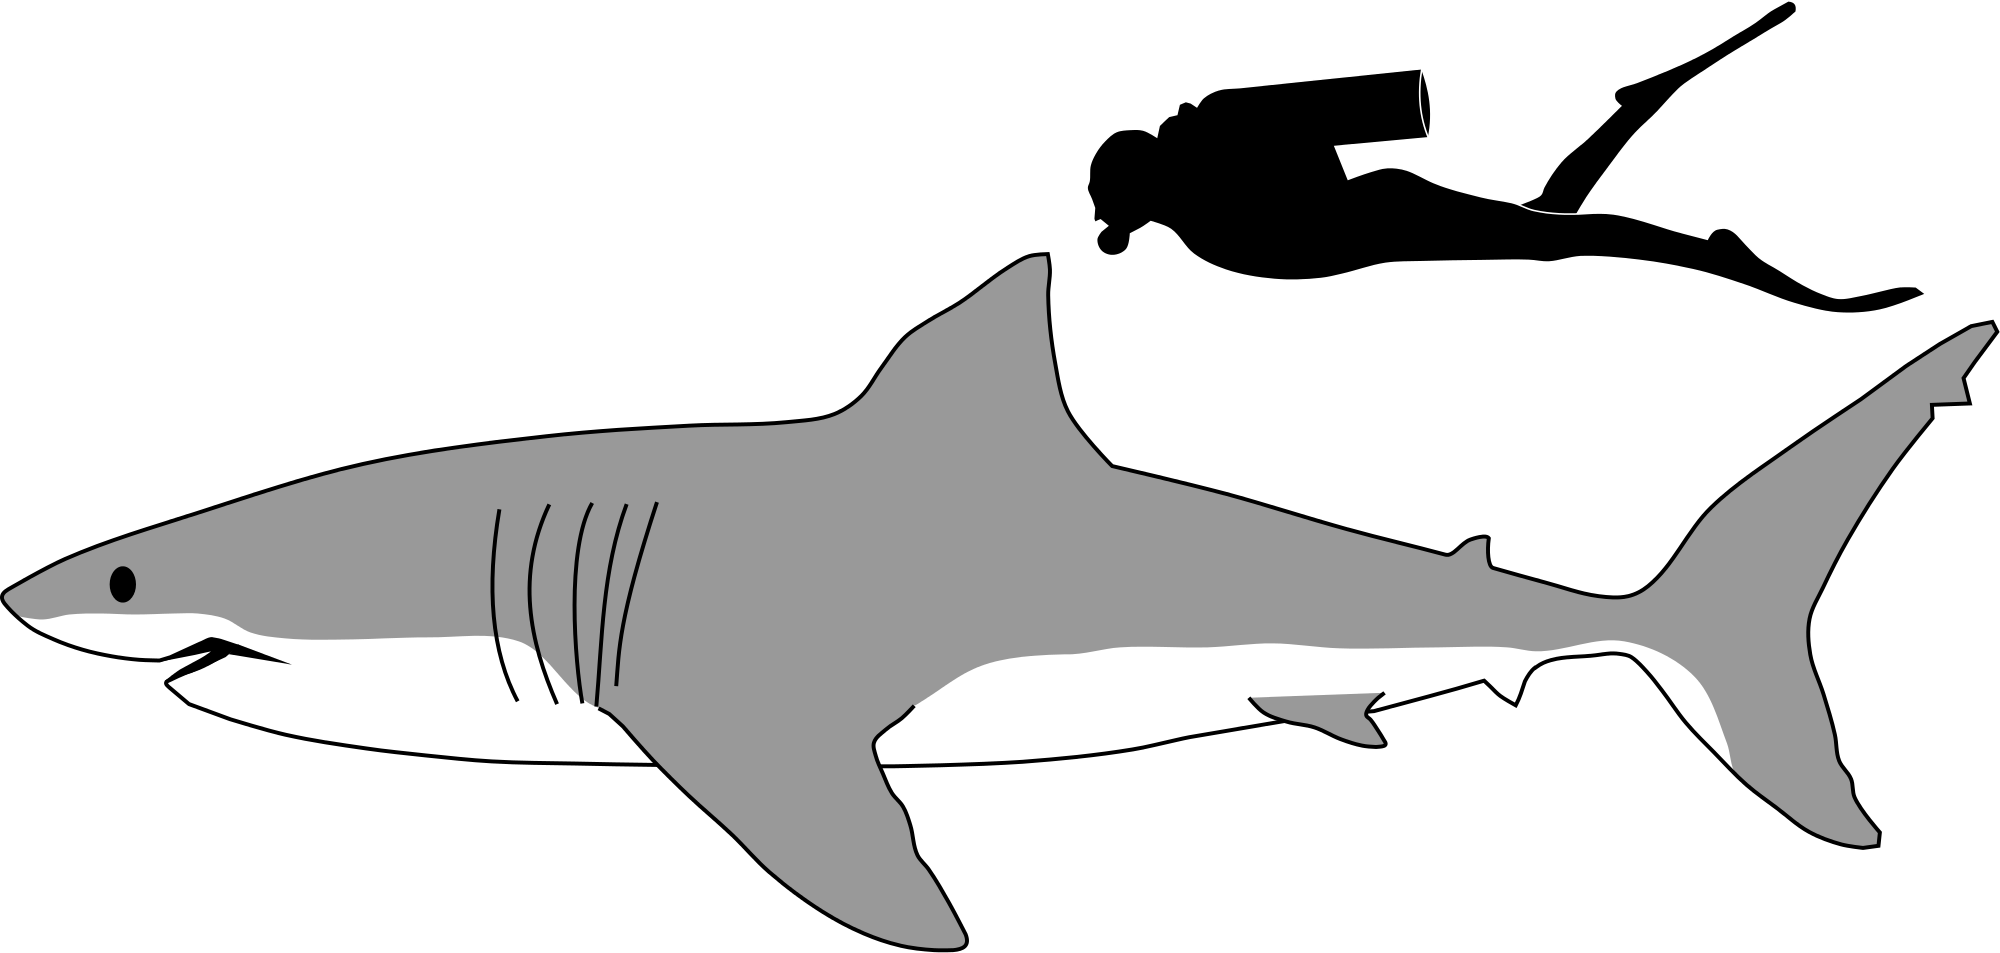 Tiger Shark Outline - ClipArt Best